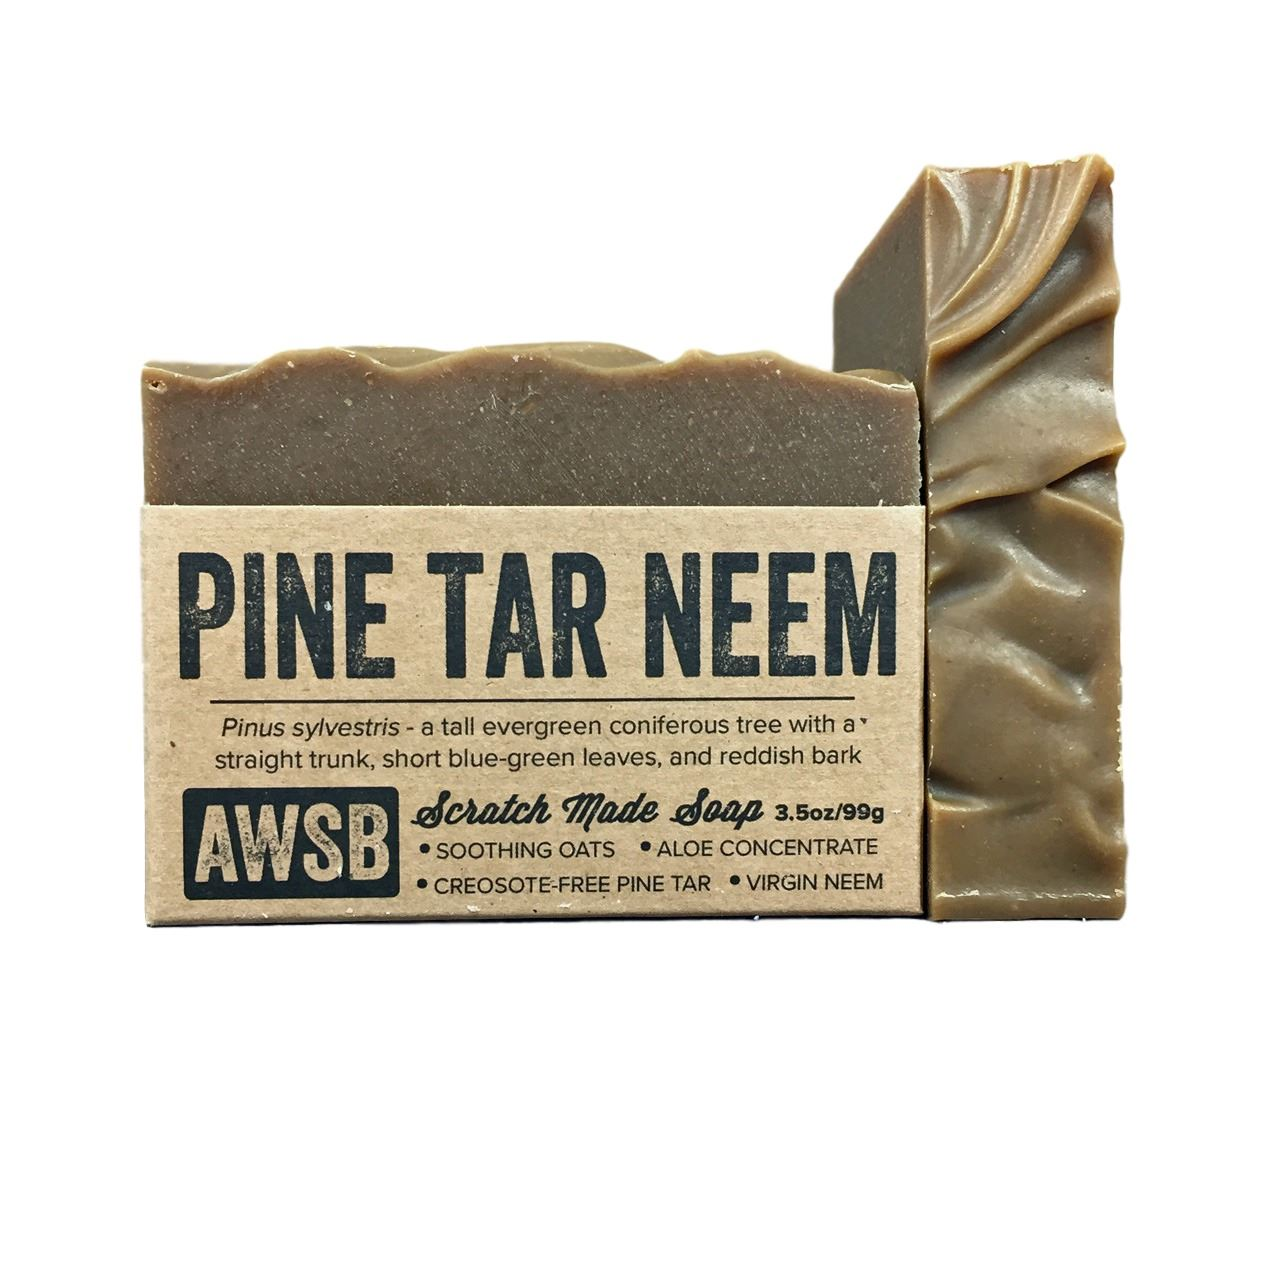 pine tar neem soap  - PIN